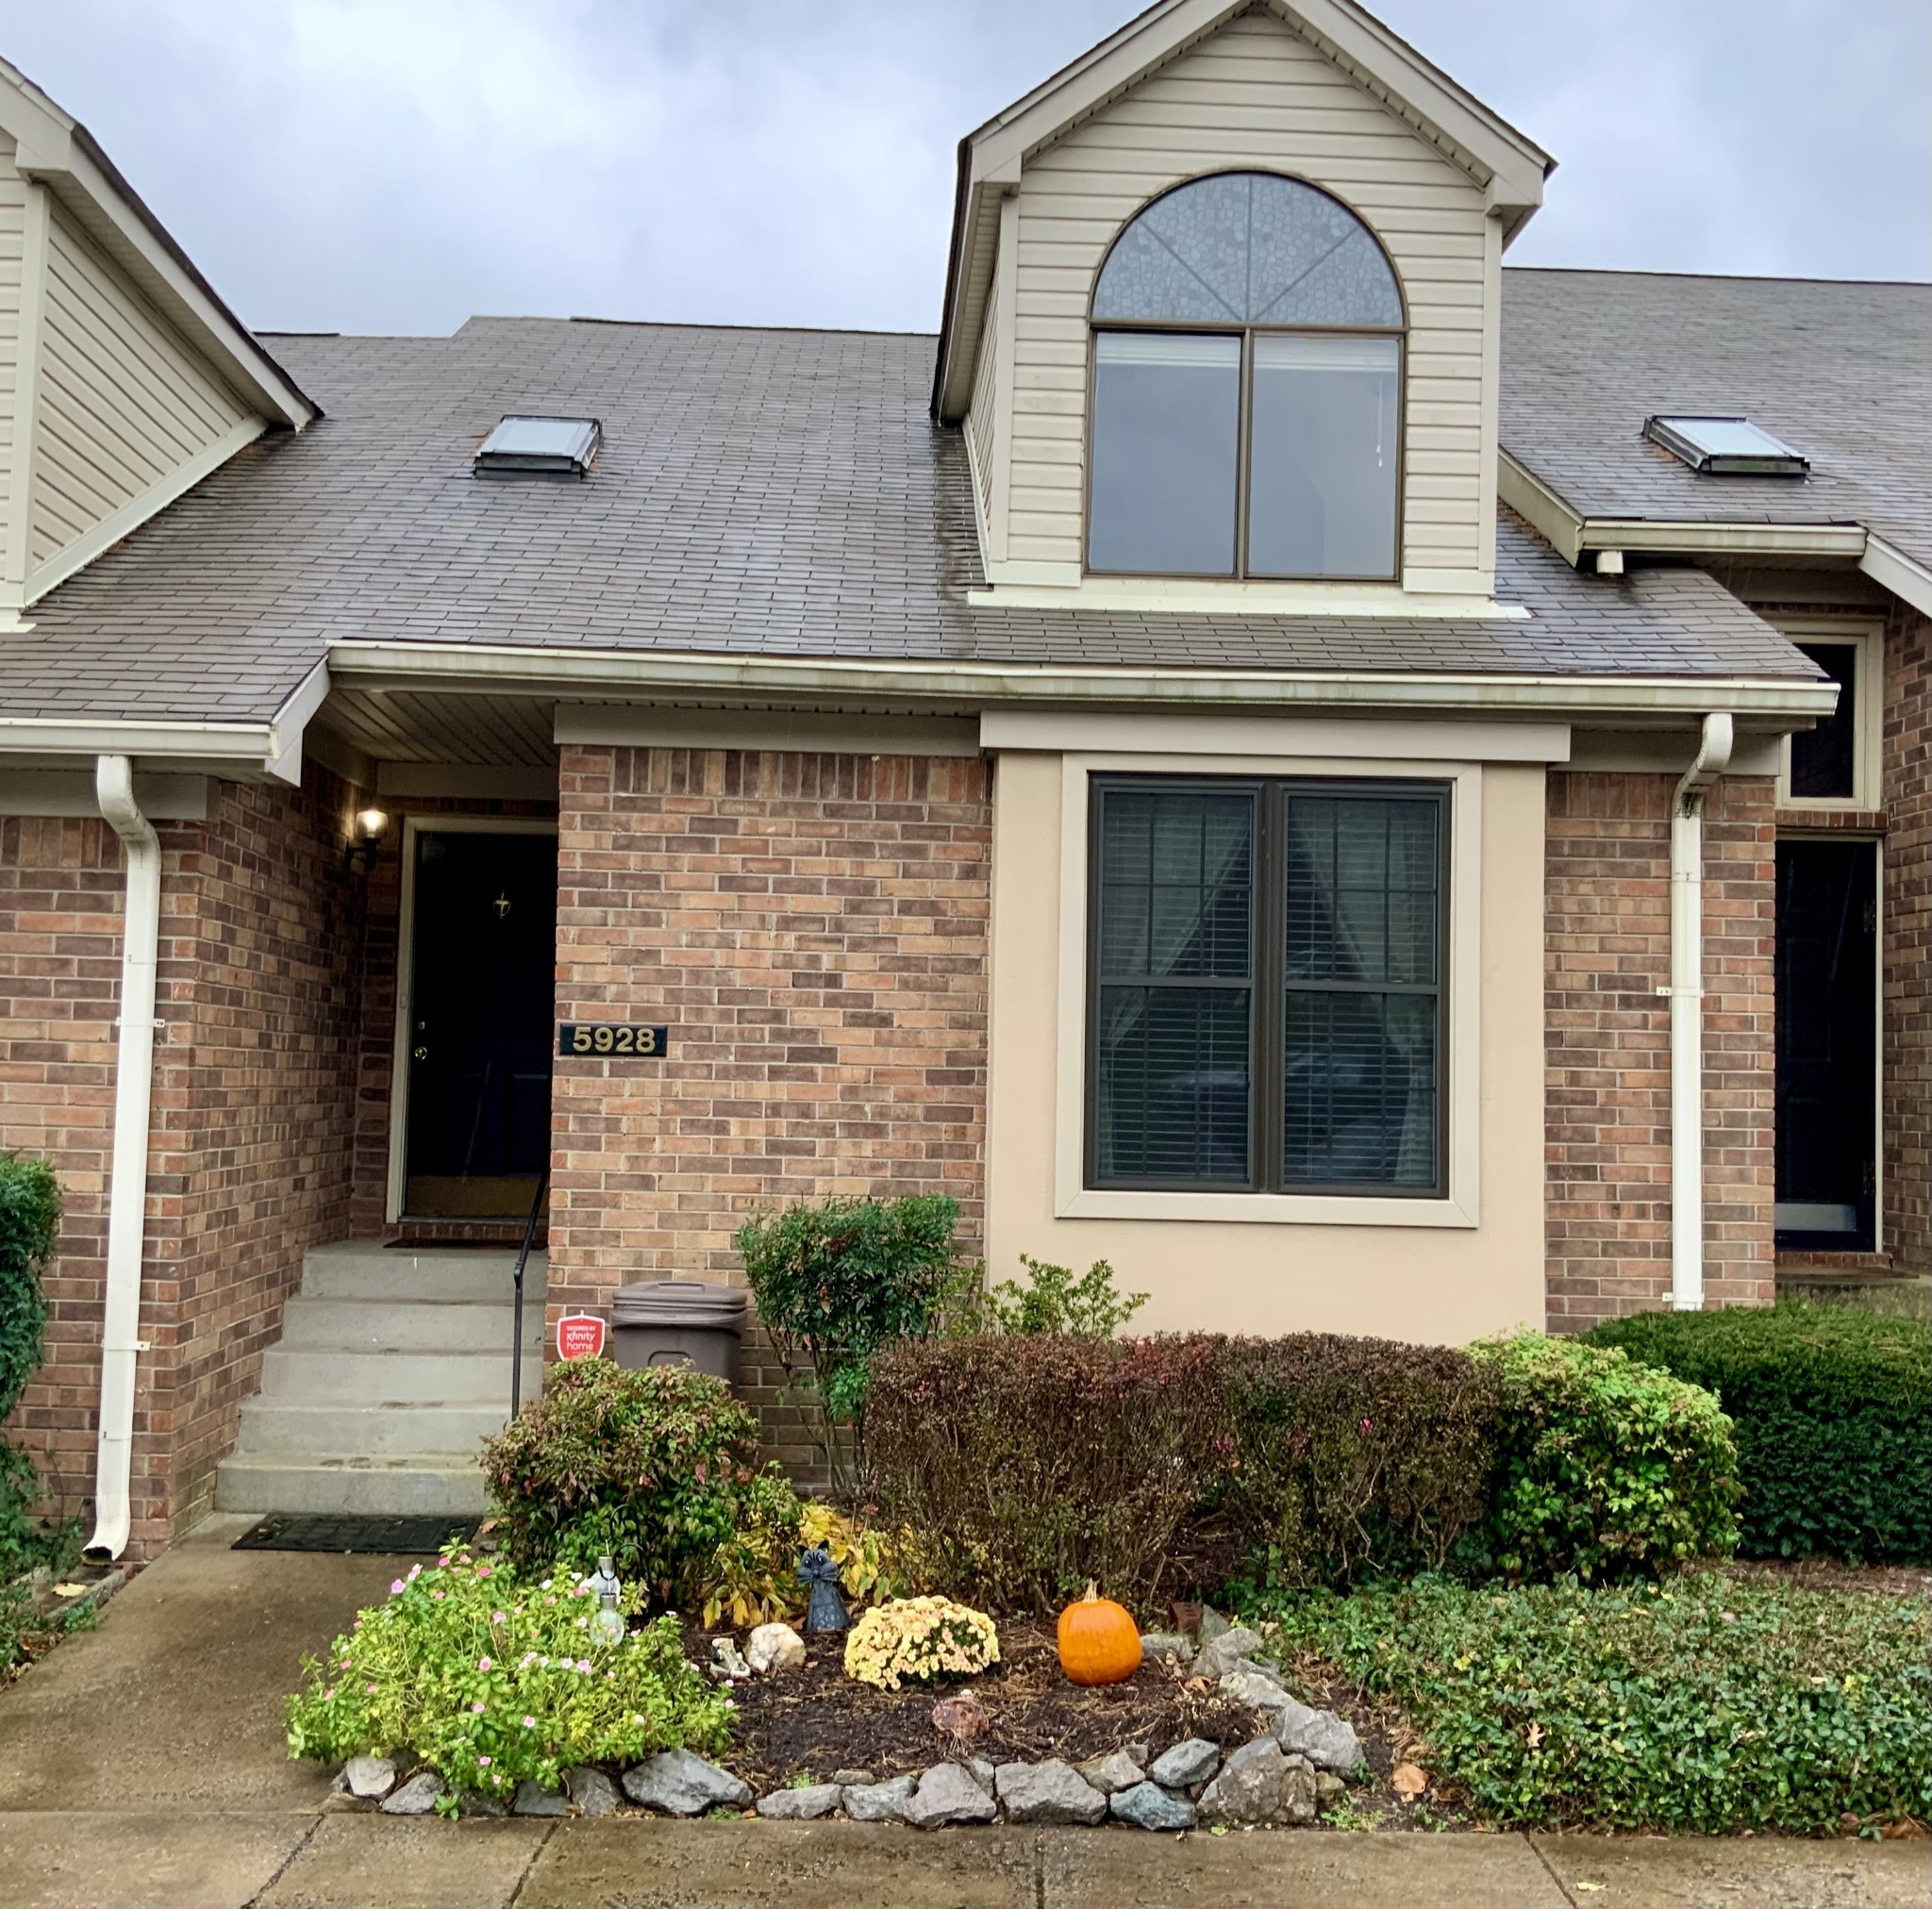 5928 Stone Brook Dr #5928 Property Photo - Brentwood, TN real estate listing